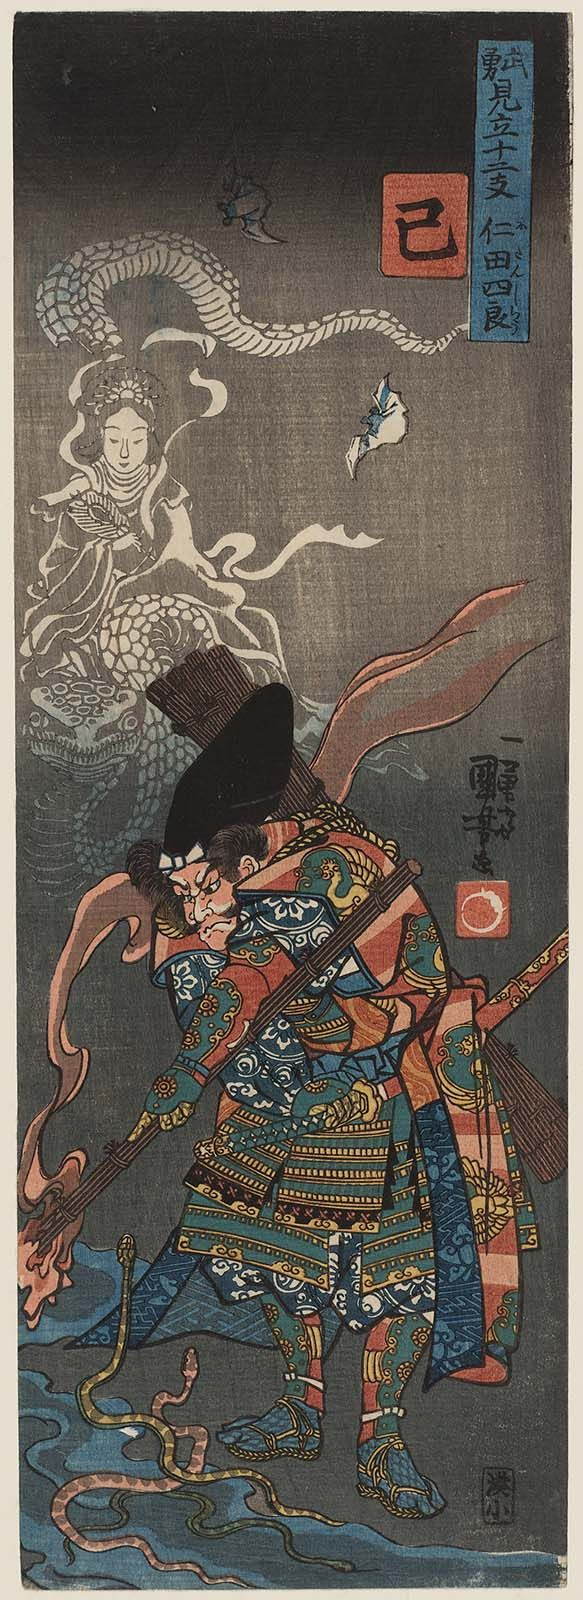 Snake (Mi): Nitan Shirô, from the series Heroes Representing the Twelve Animals of the Zodiac (Buyû mitate jûnishi)  Japanese about 1840 (Tenpô 11) Artist Utagawa Kuniyoshi (Japanese, 1797–1861), Publisher Minatoya Kohei (Japanese) DIMENSIONS Chûtanzaku; 35.7 x 12.7 cm (14 1/16 x 5 in.) Currently at the MFA ACCESSION NUMBER 11.16576  MEDIUM OR TECHNIQUE Woodblock print (nishiki-e); ink and color on paper